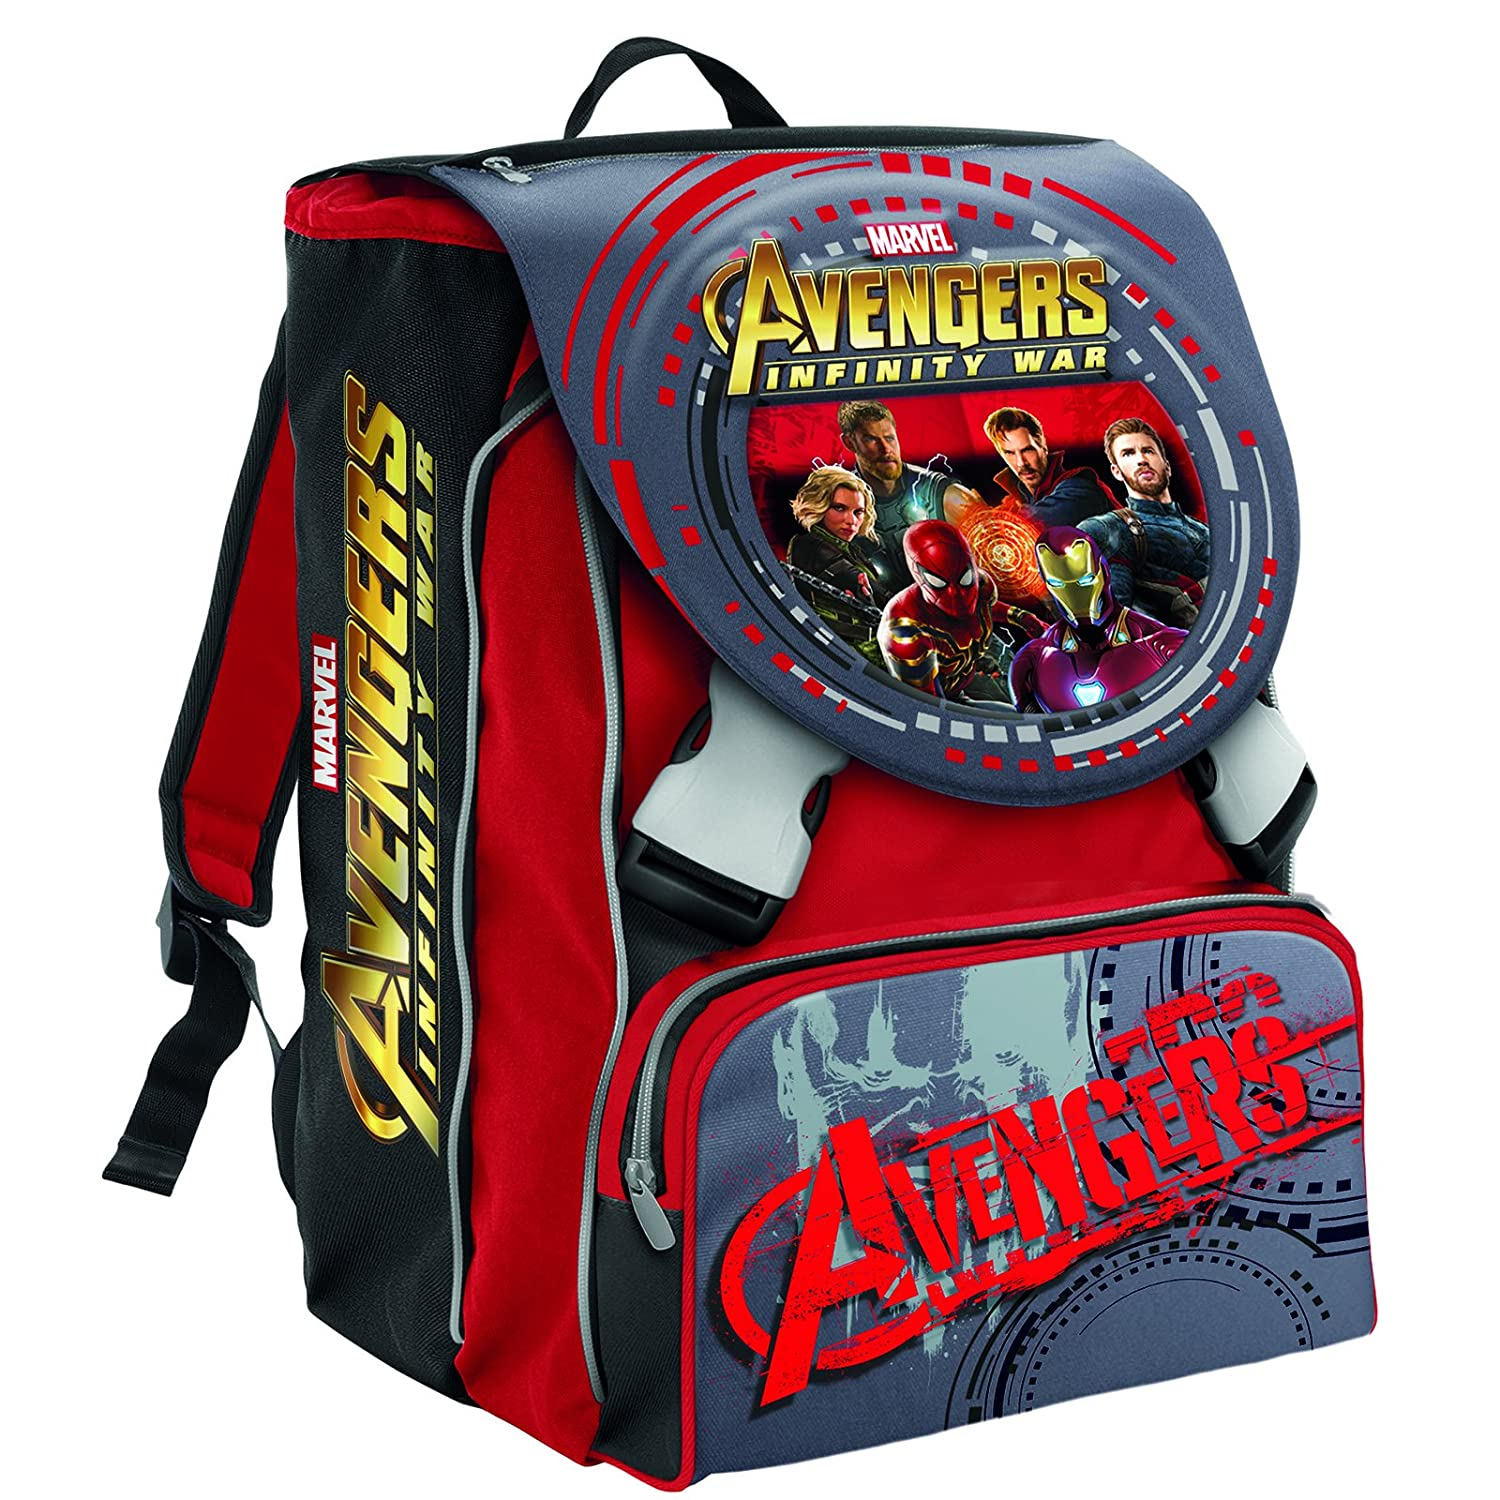 School Expandable Backpack Marvel AVENGERS INFINITY WAR , Red 28 Lt – 2 Browsable 3D Flaps + Gadget included